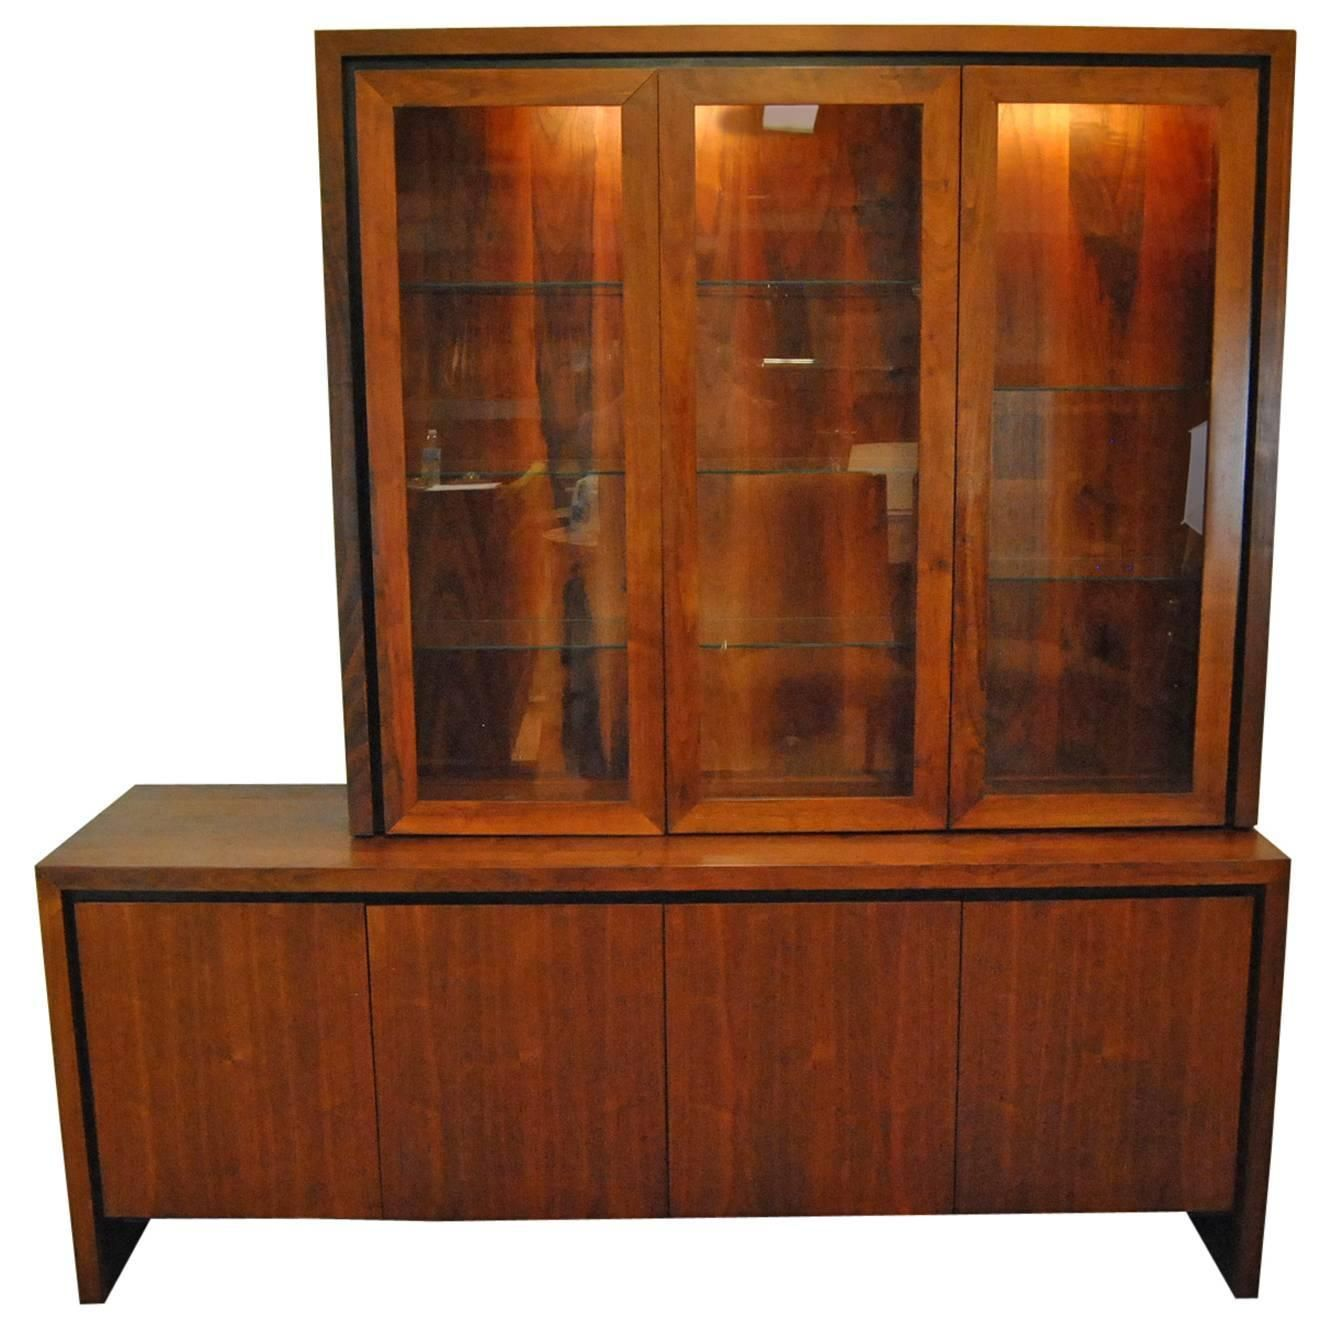 Midcentury Danish Modern Two Pc Teak Buffet China Display Cabinet Delectable Modern Dining Room Display Cabinets Design Inspiration